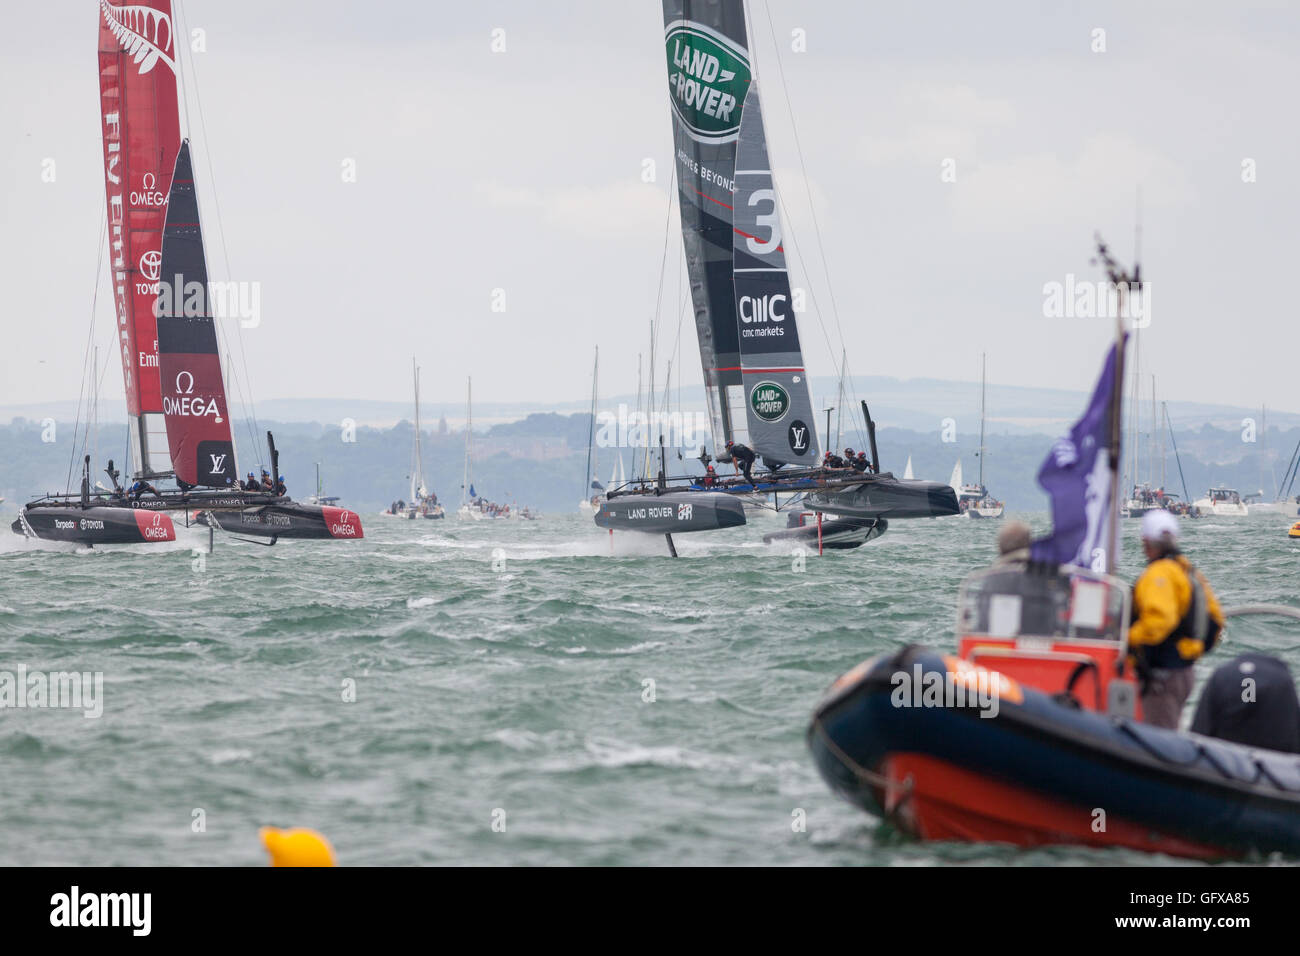 Oracle Team USA (left) Land Rover BAR (right) sailing teams in action at the 2016 America's Cup World Series - Stock Image